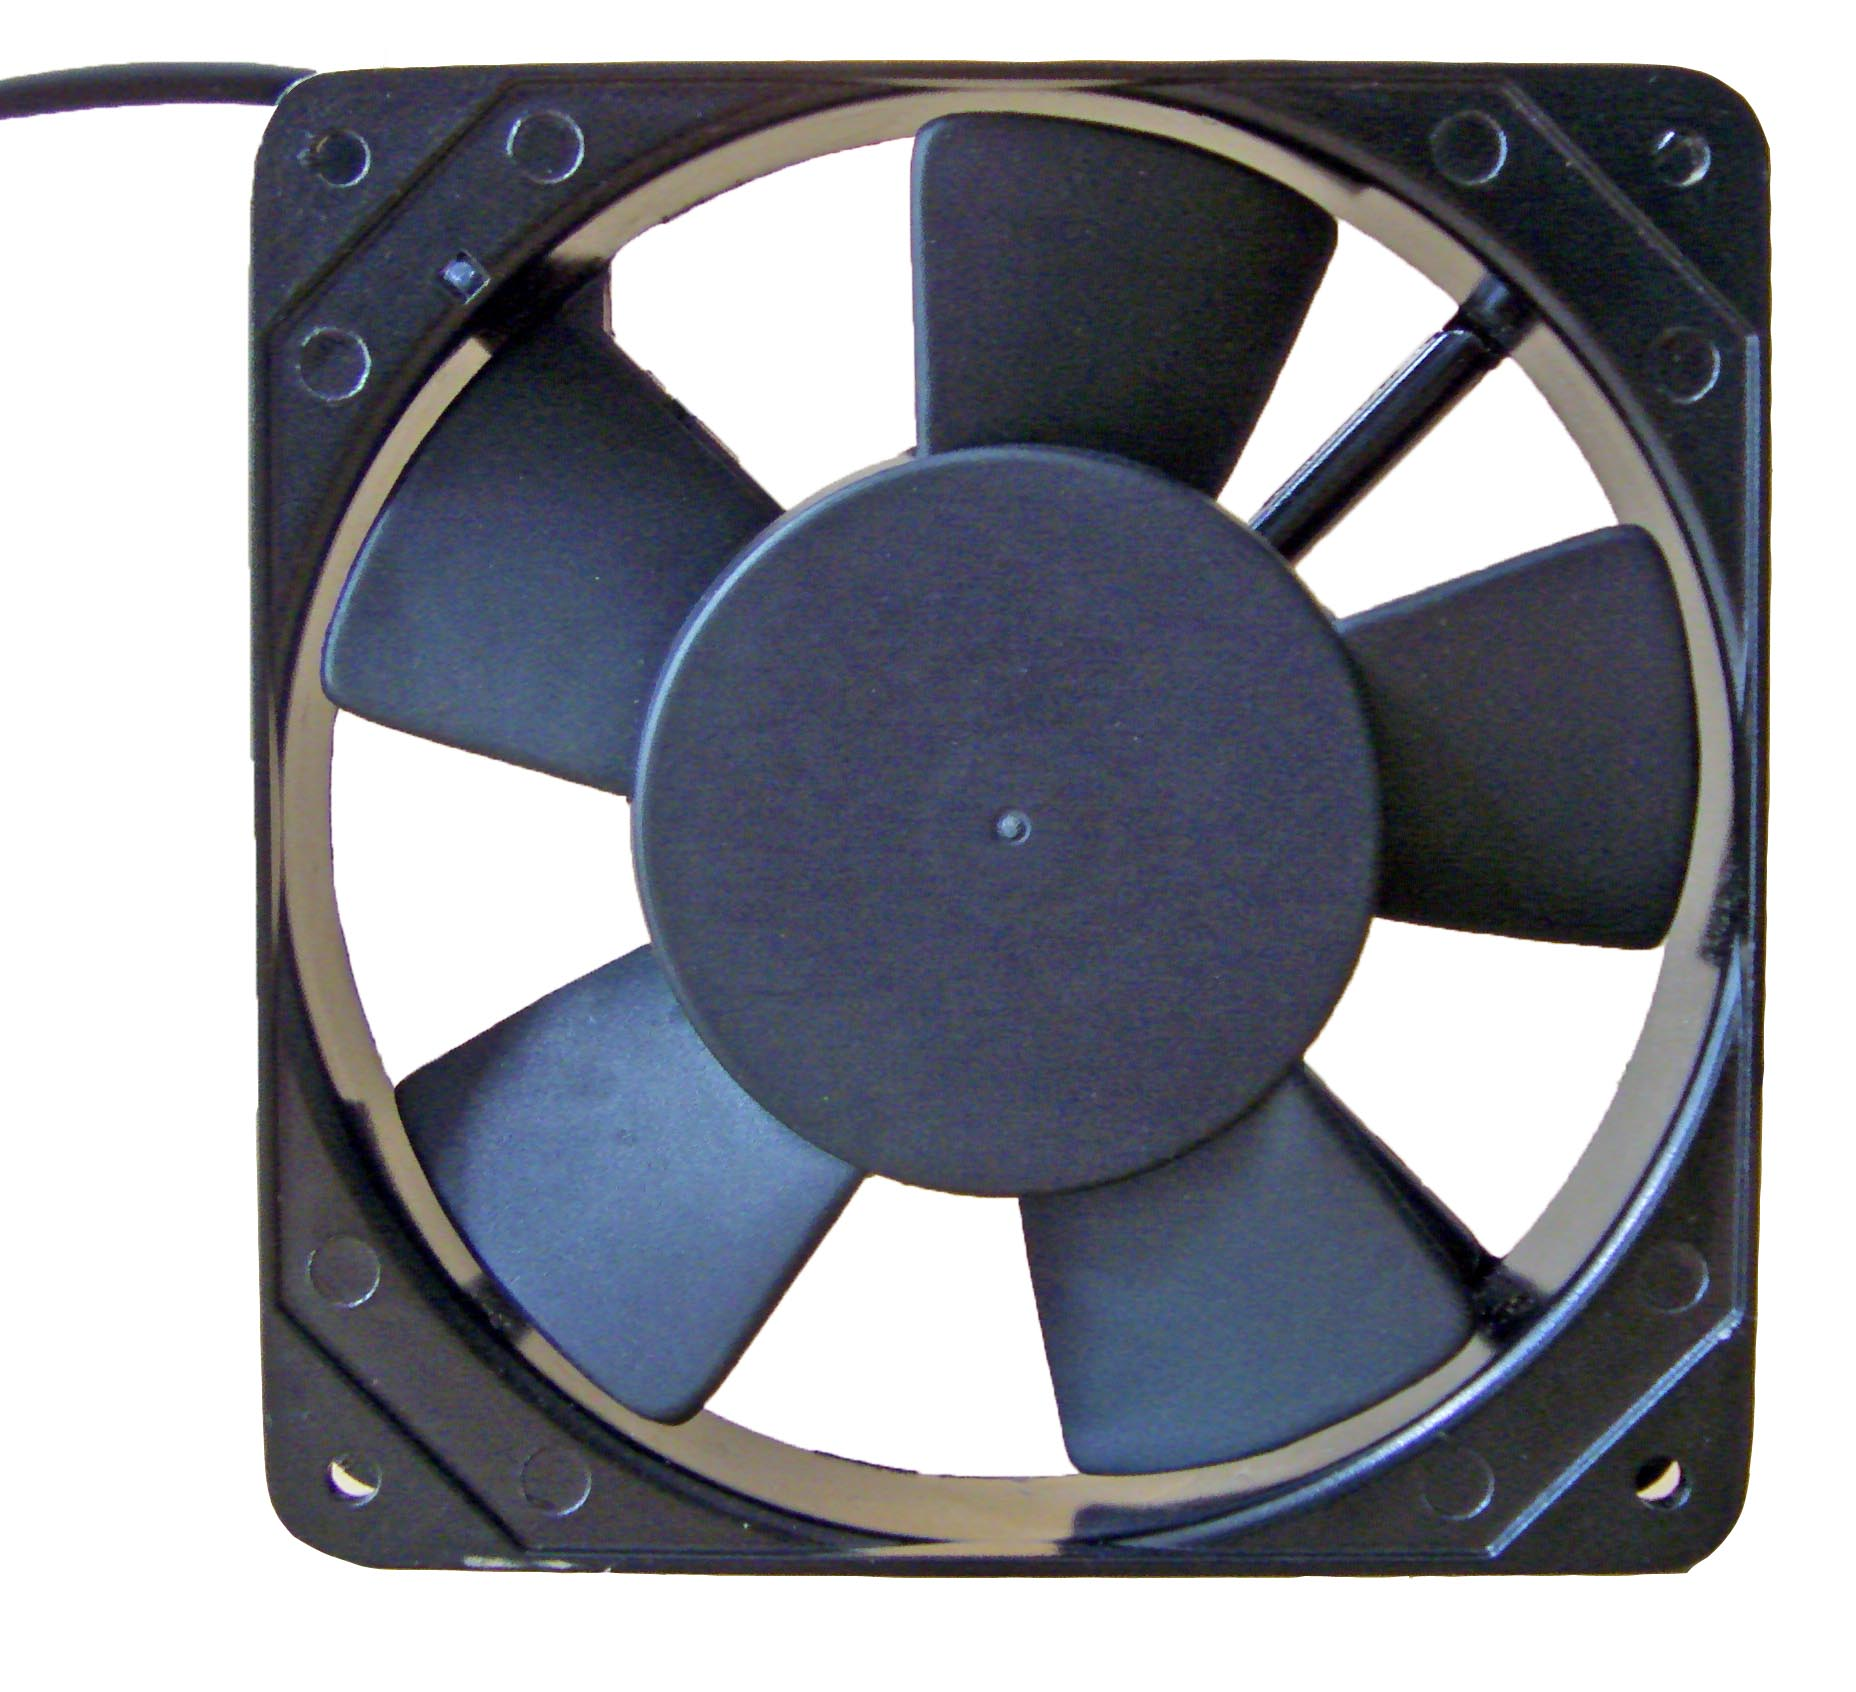 120x120x38mm 115v 220v <strong>AC</strong> axial flow fan 12038 <strong>ac</strong> fan with CE RoHS